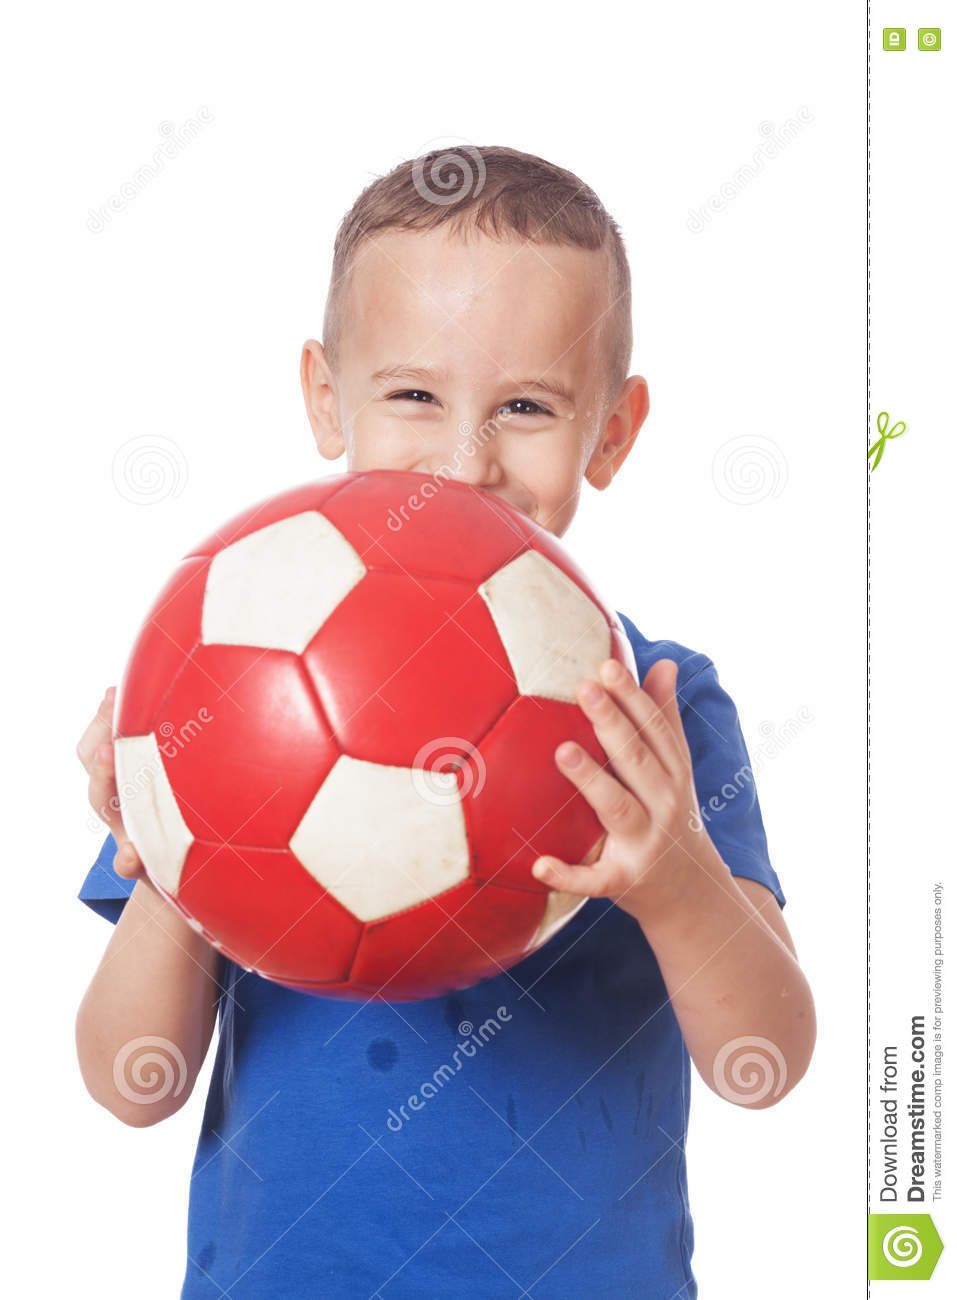 Download Happy soccer player stock photo. Image of holding, person - 82153786